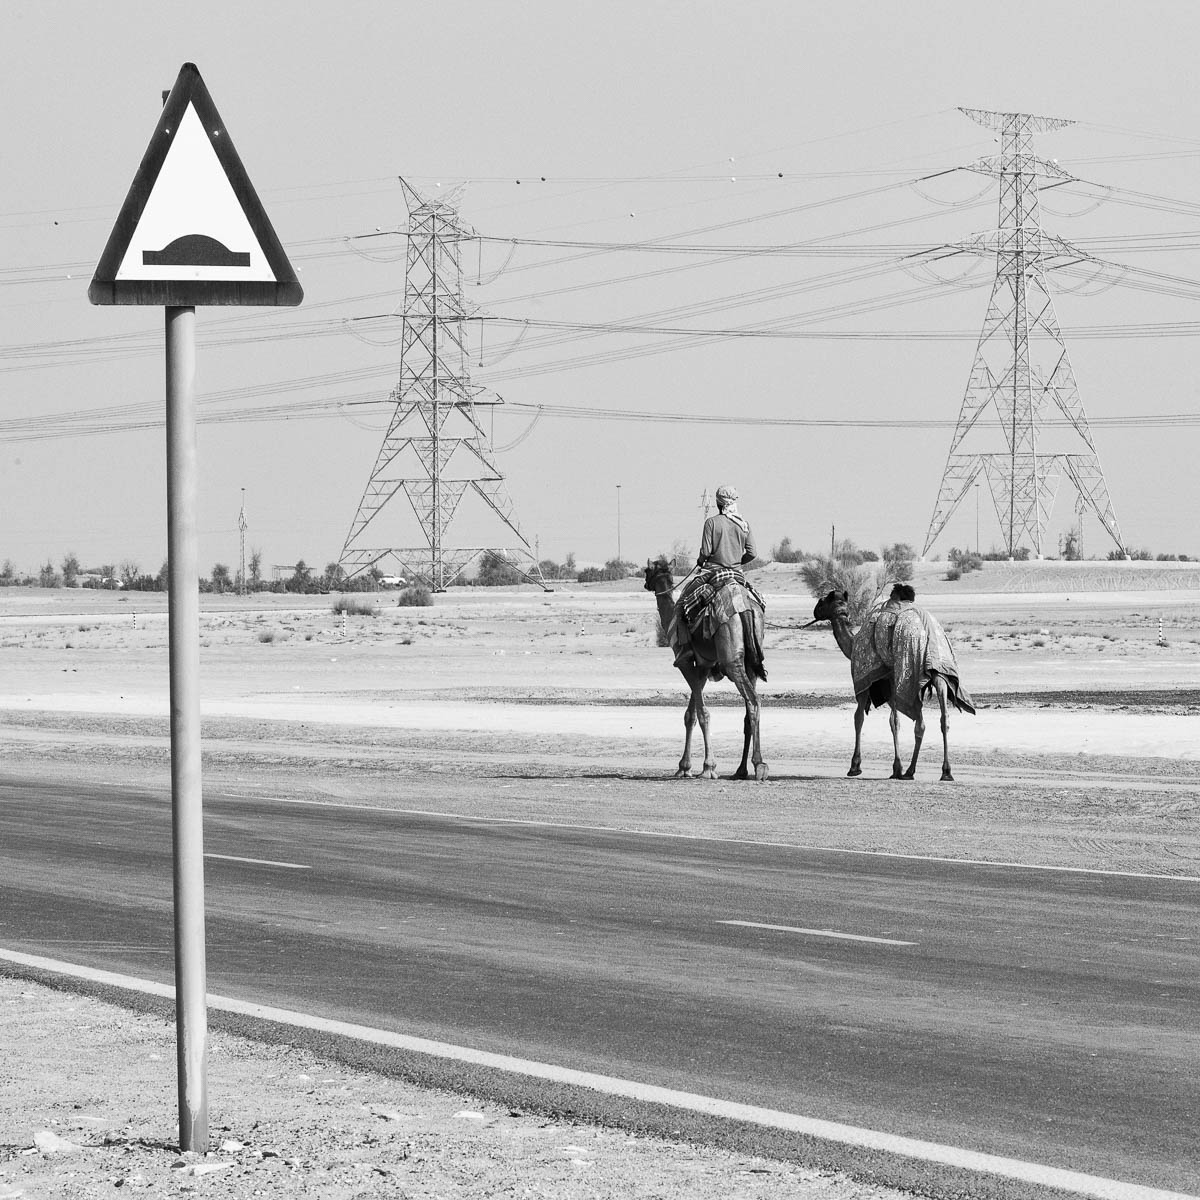 Two camels pass a sign warning of humps in the road, Dubai, UAE